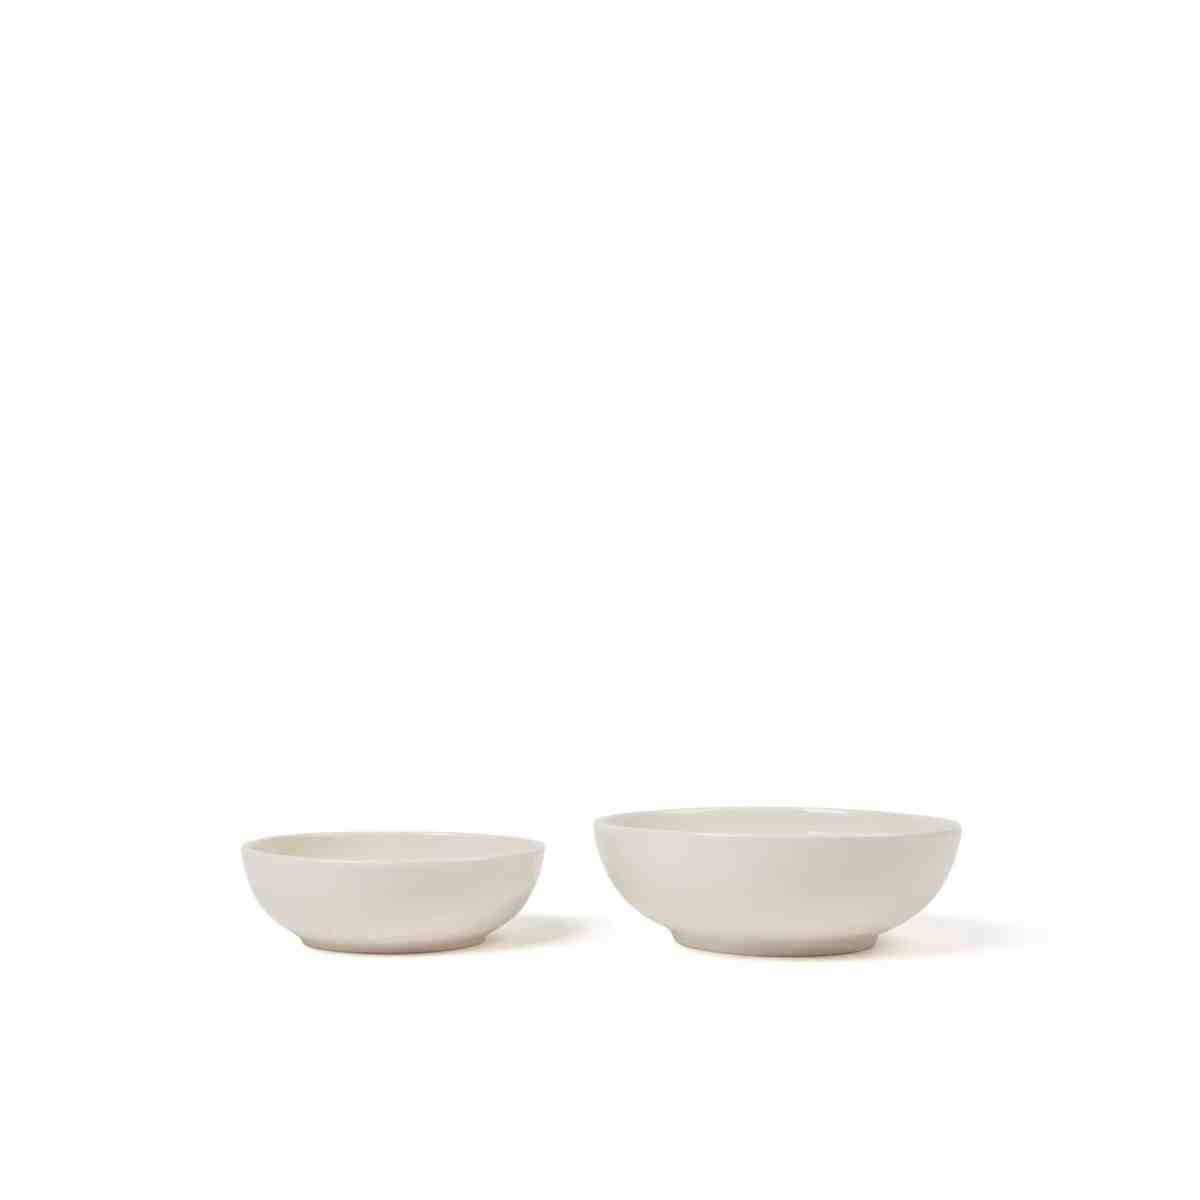 Another-country-pottery-big-bowl-natural-004